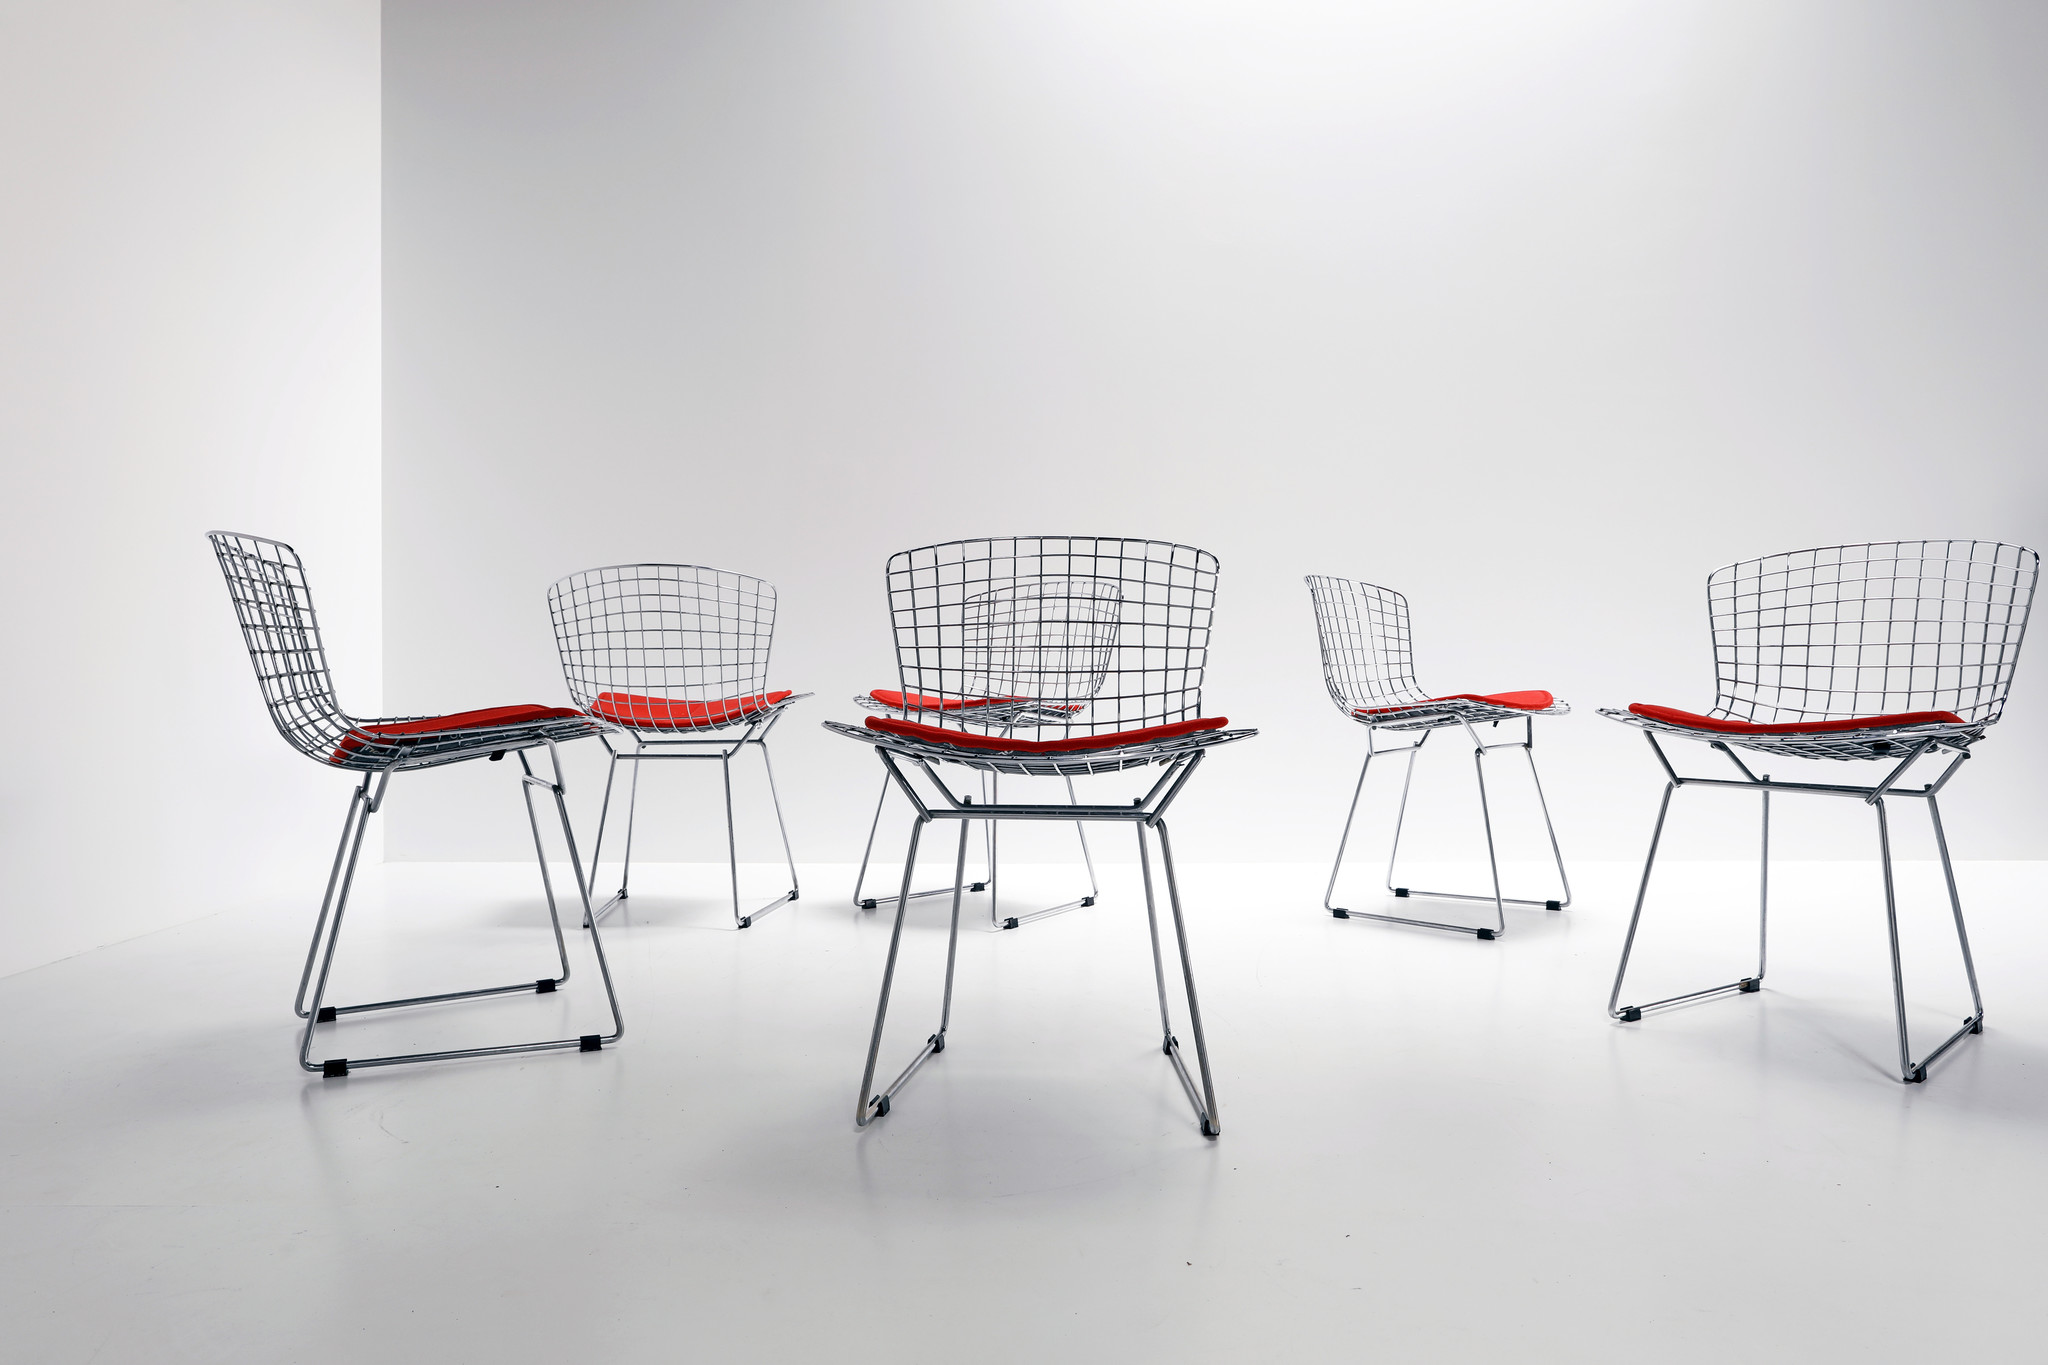 Set Bertoia Chairs by Harry Bertoia for Knoll, 1953